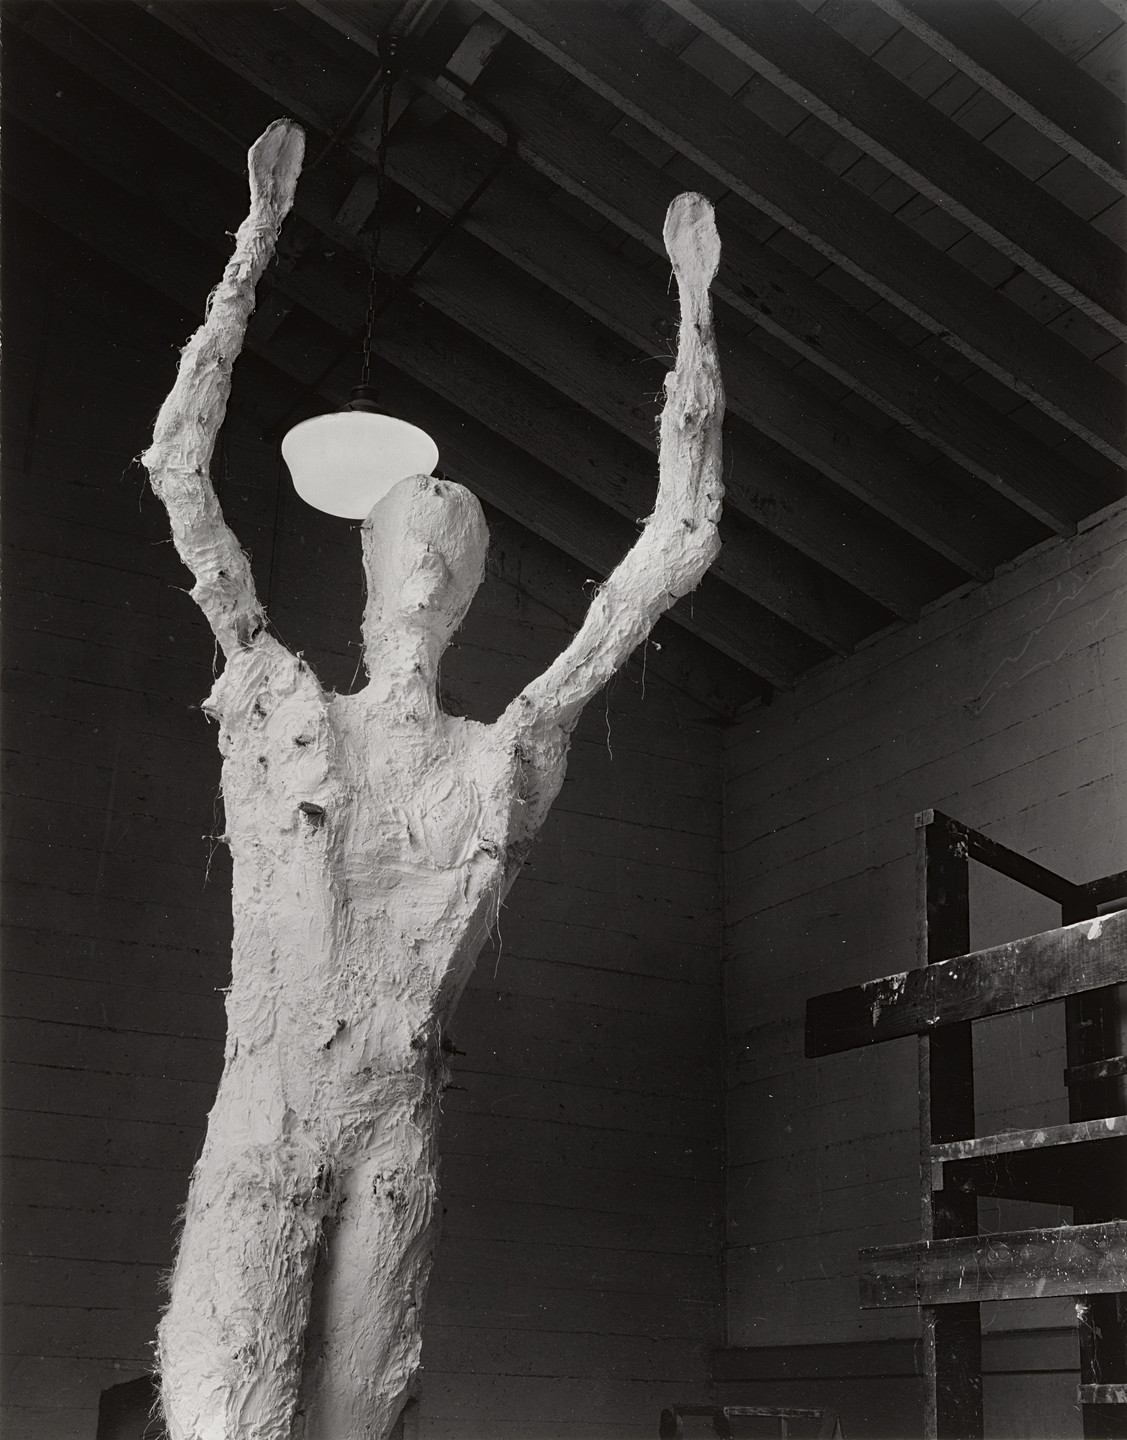 Ansel Adams. Armature of Monumental Sculpture. 1938